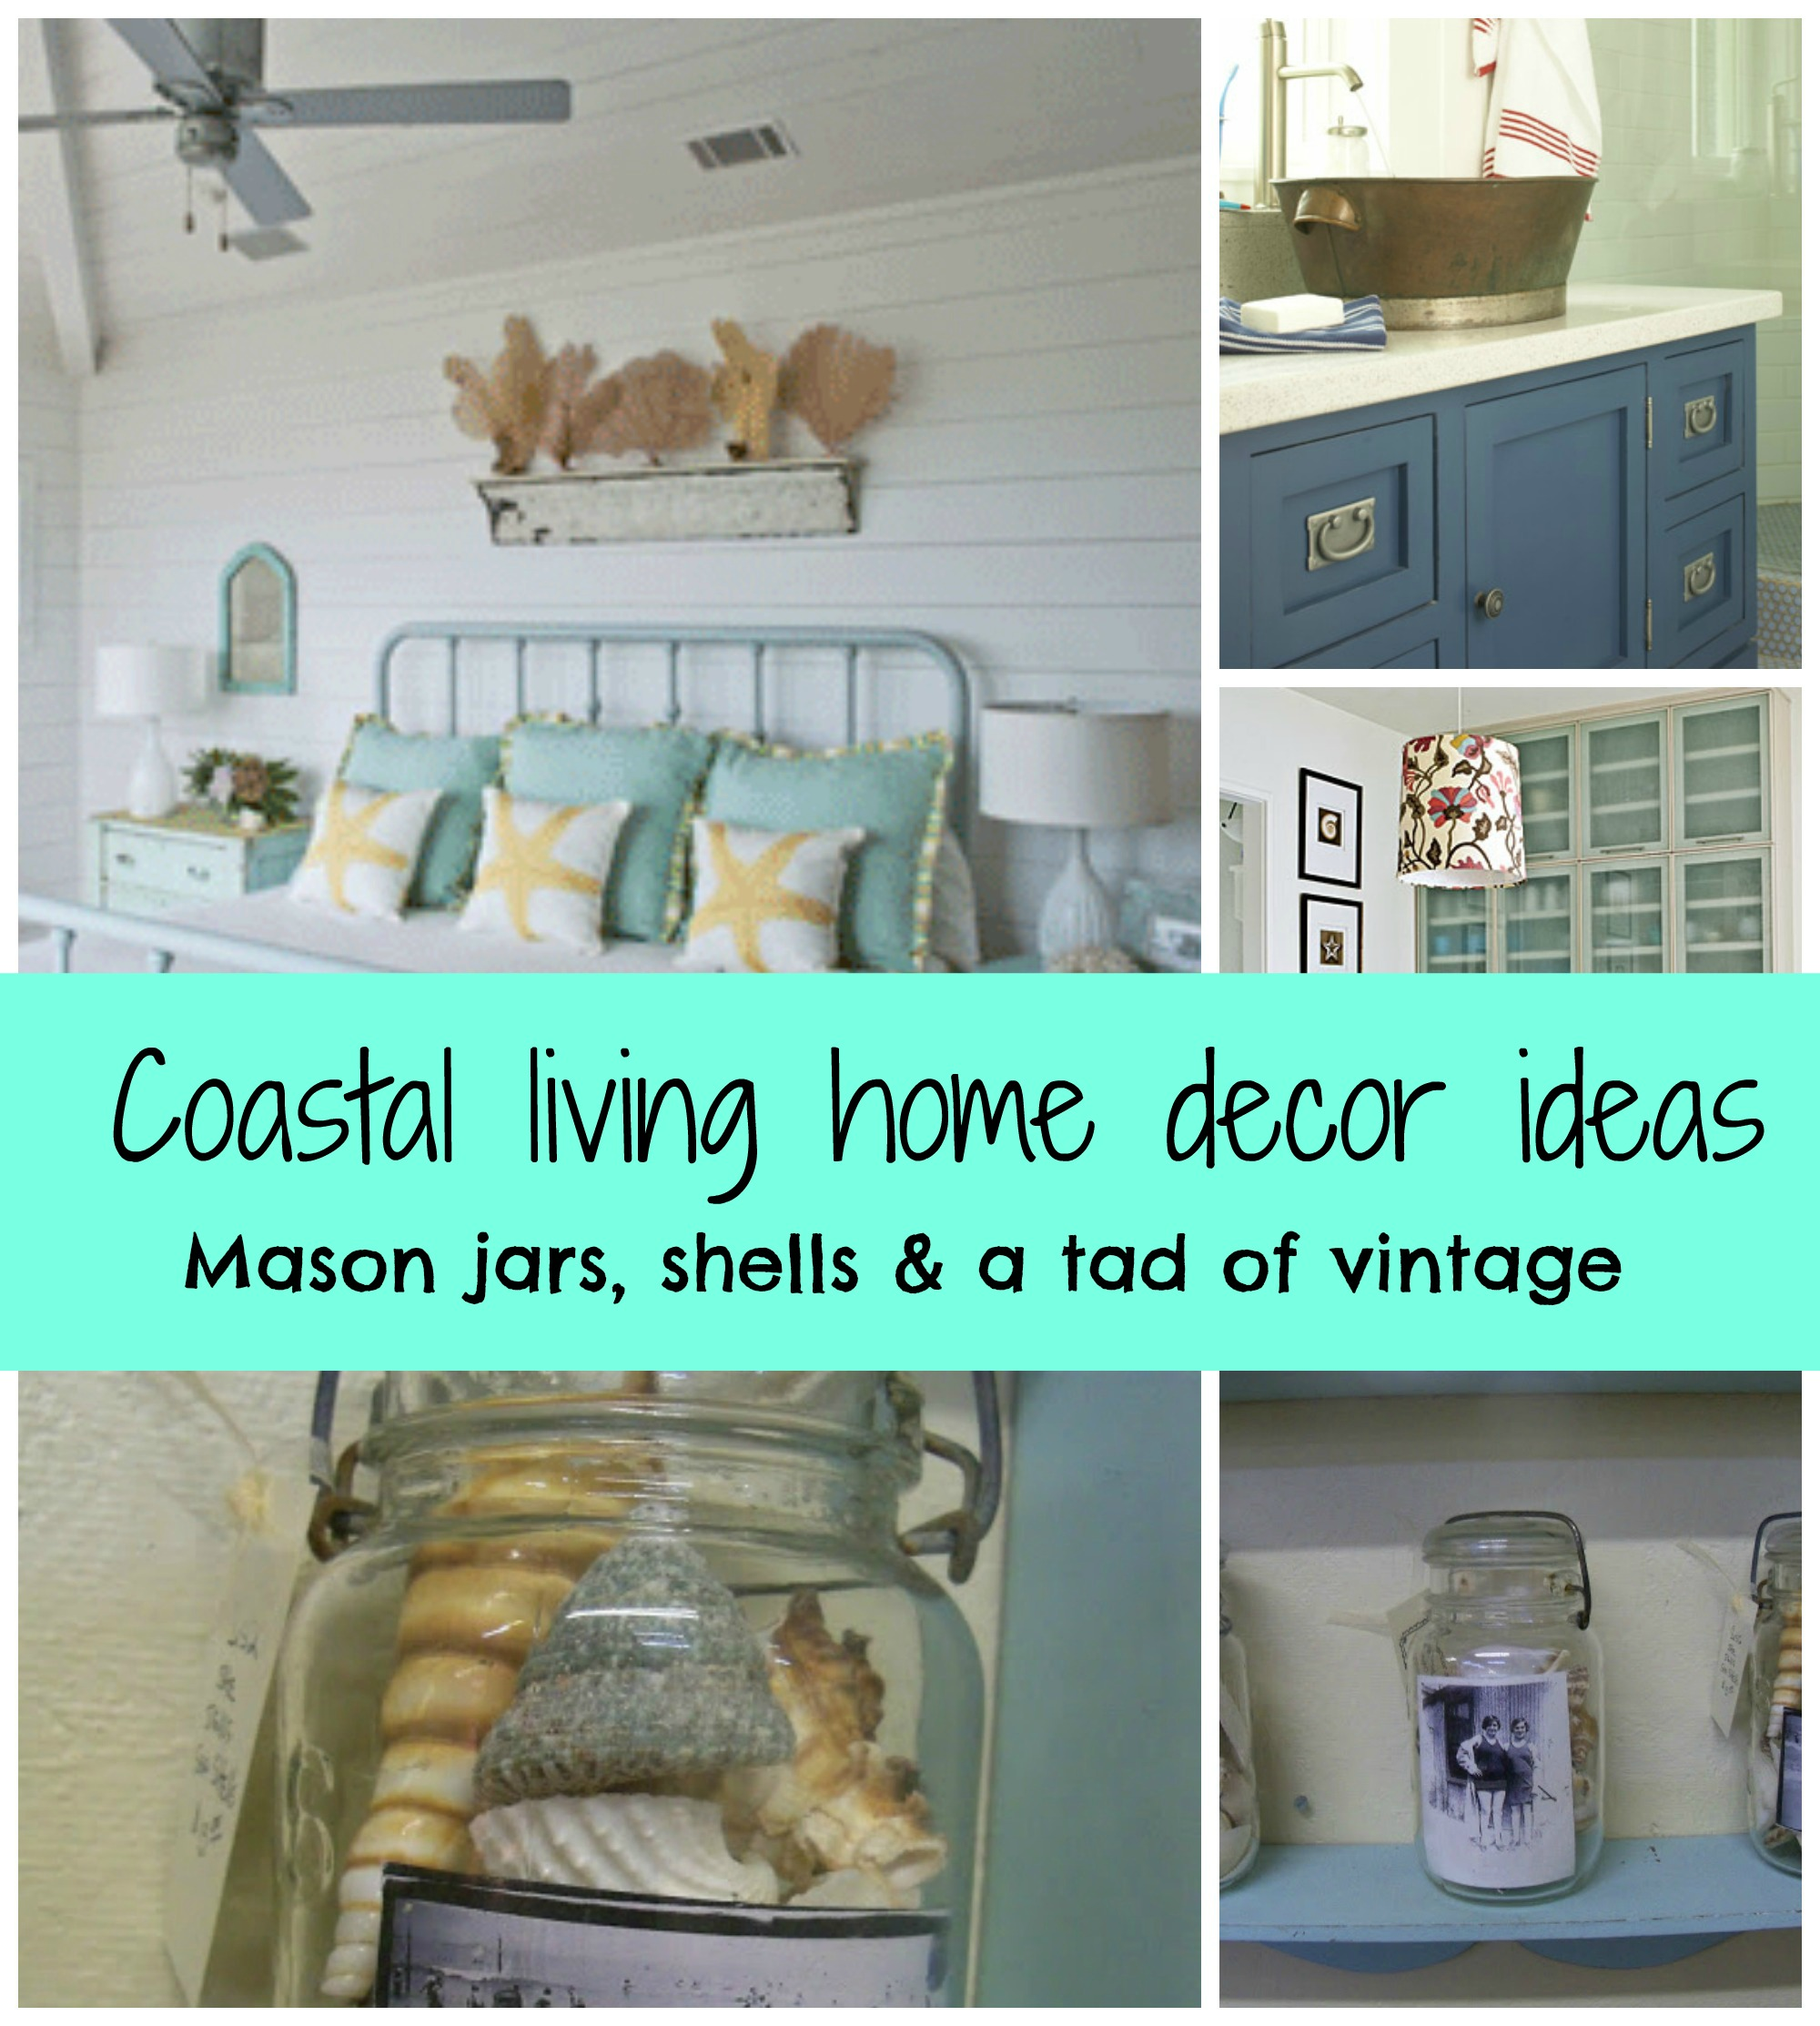 Coastal living nifty decor ideas - Debbiedoos